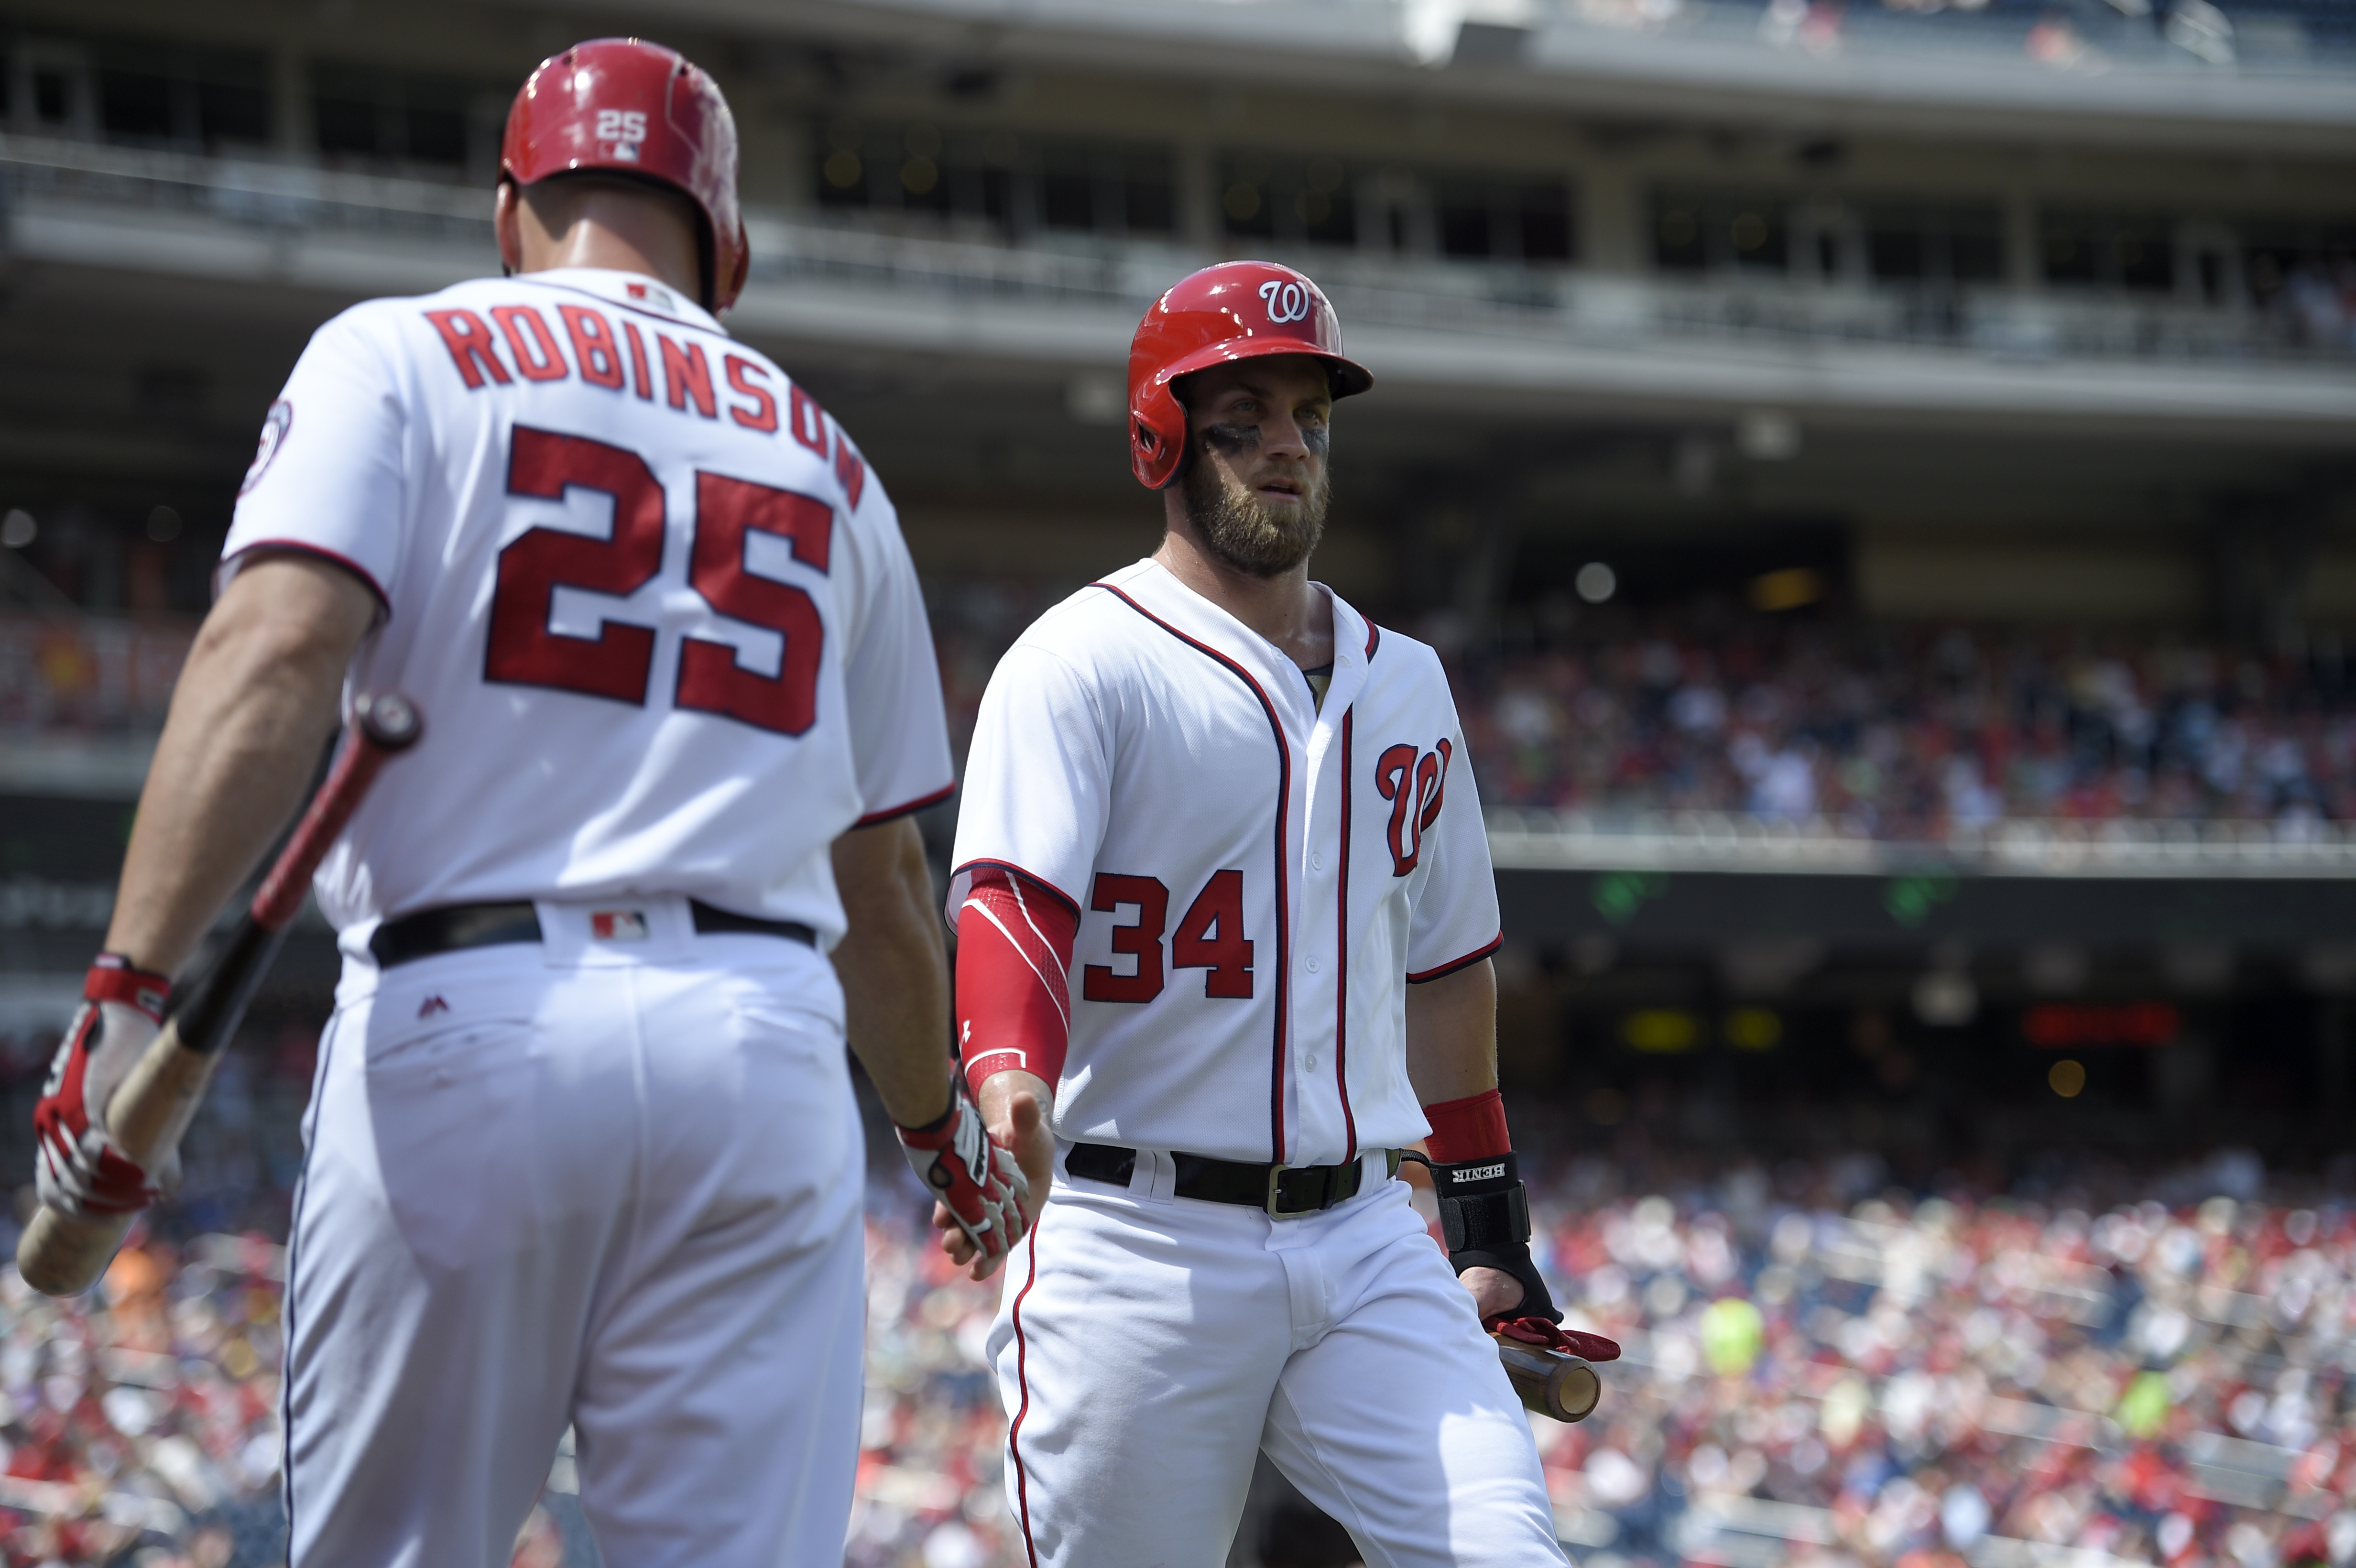 Washington Nationals' Bryce Harper (34) is greeted by Clint Robinson after he scored on a sacrifice fly by Anthony Rendon during the first inning of a baseball game against the Atlanta Braves, Sunday, Aug. 14, 2016, in Washington. (AP Photo/Nick Wass)